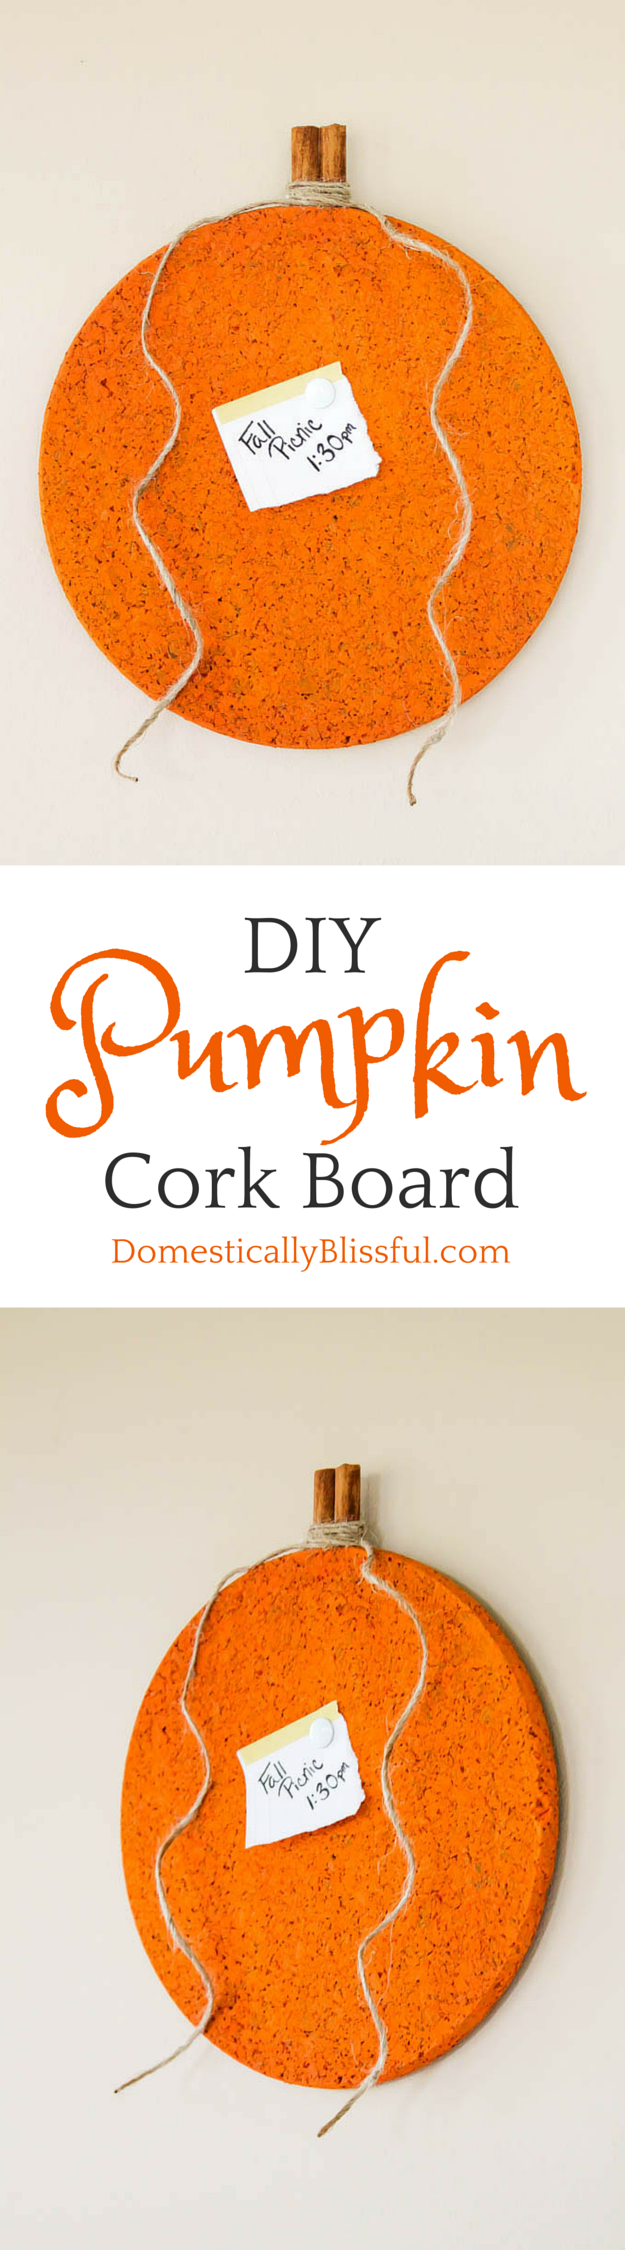 Pumpkin Cork Board tutorial via Domestically Blissful